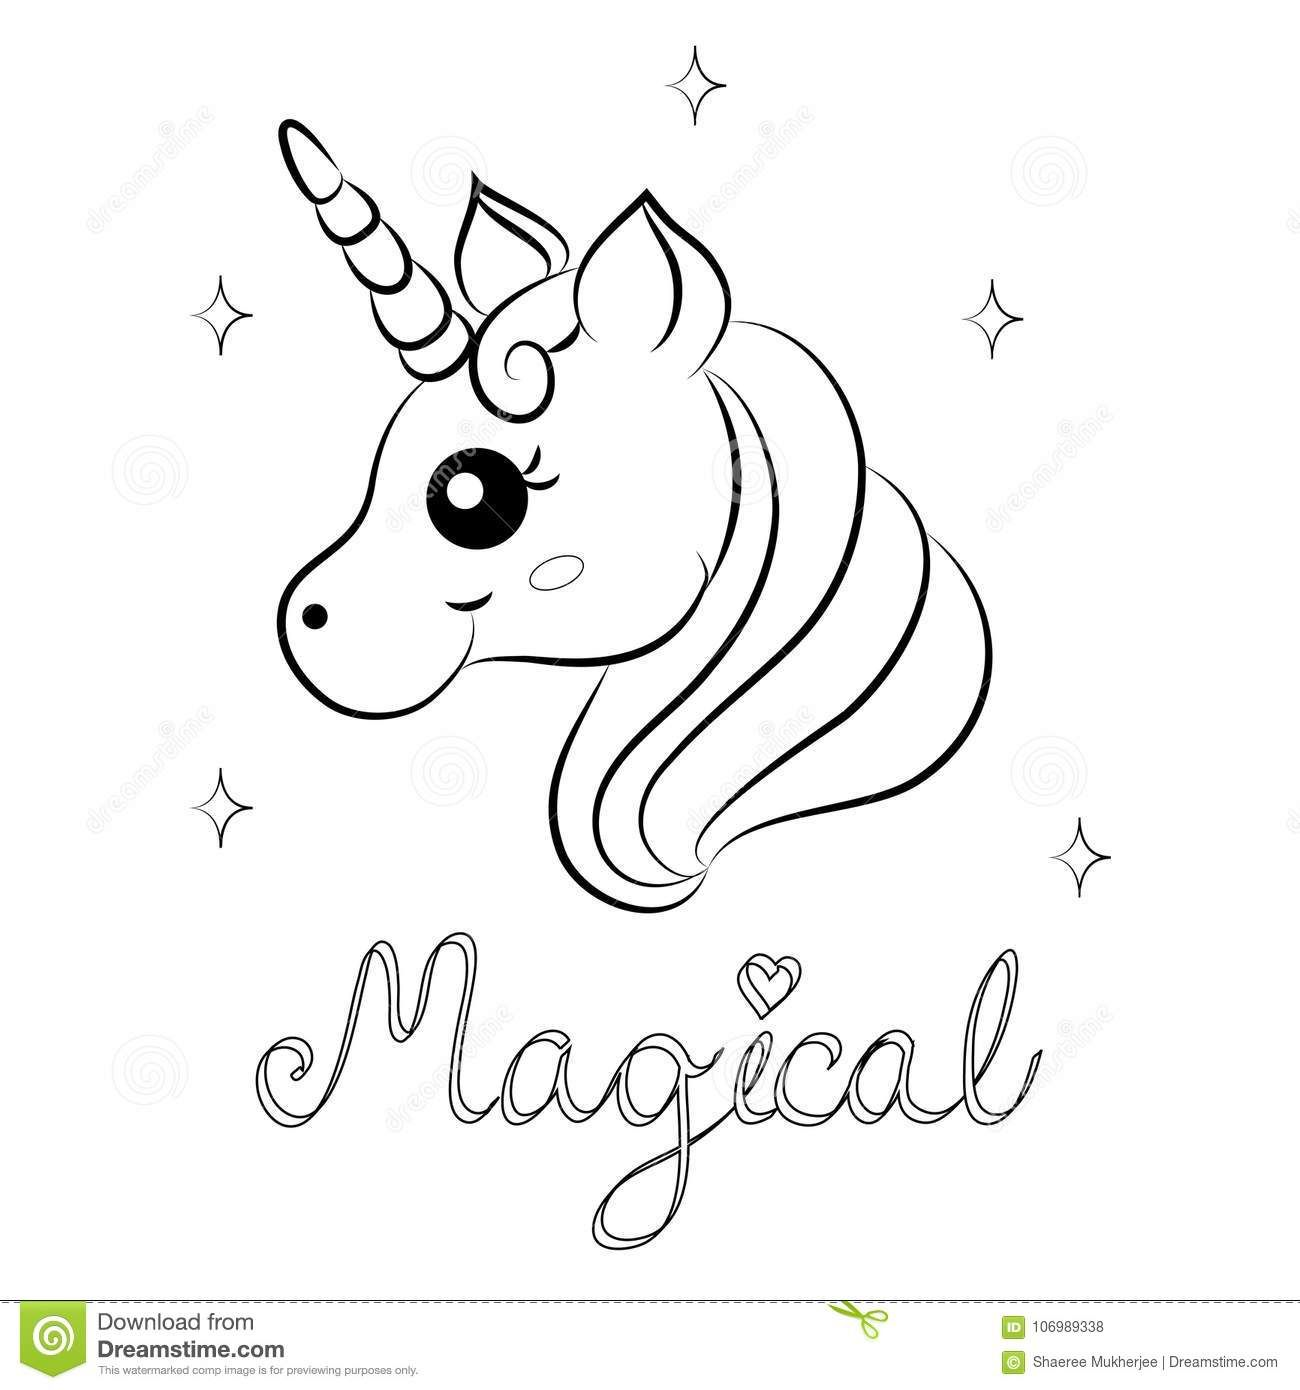 Unicorn Coloring Pages Images In 2019 Http Www Wallpaperartdesignhd Us Unicorn Coloring P Cartoon Coloring Pages Unicorn Coloring Pages Animal Coloring Pages